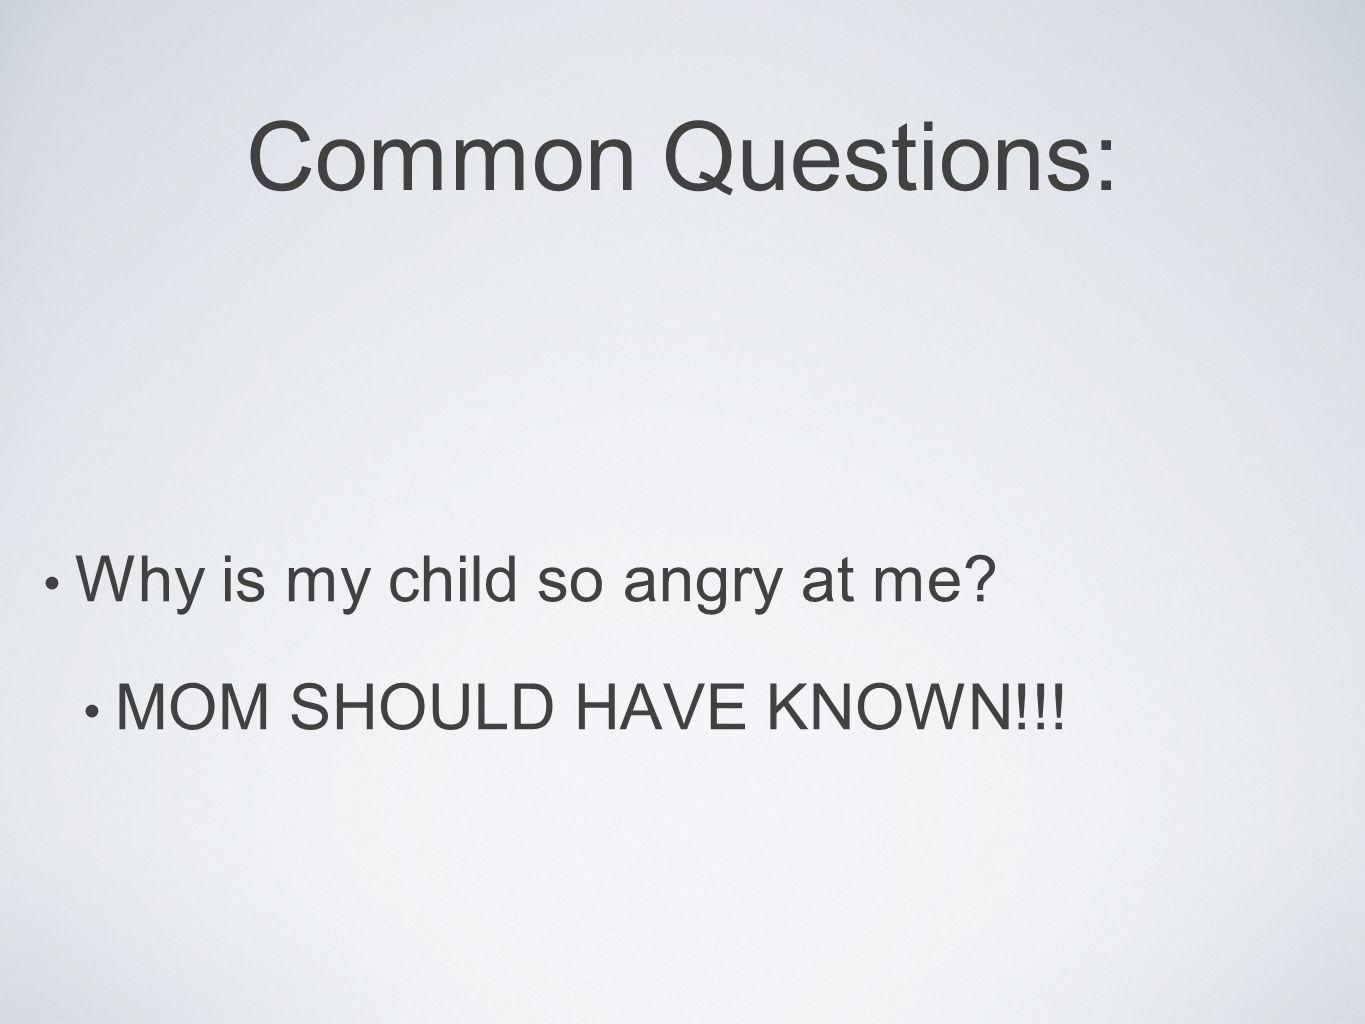 Common Questions: Why is my child so angry at me? MOM SHOULD HAVE KNOWN!!!